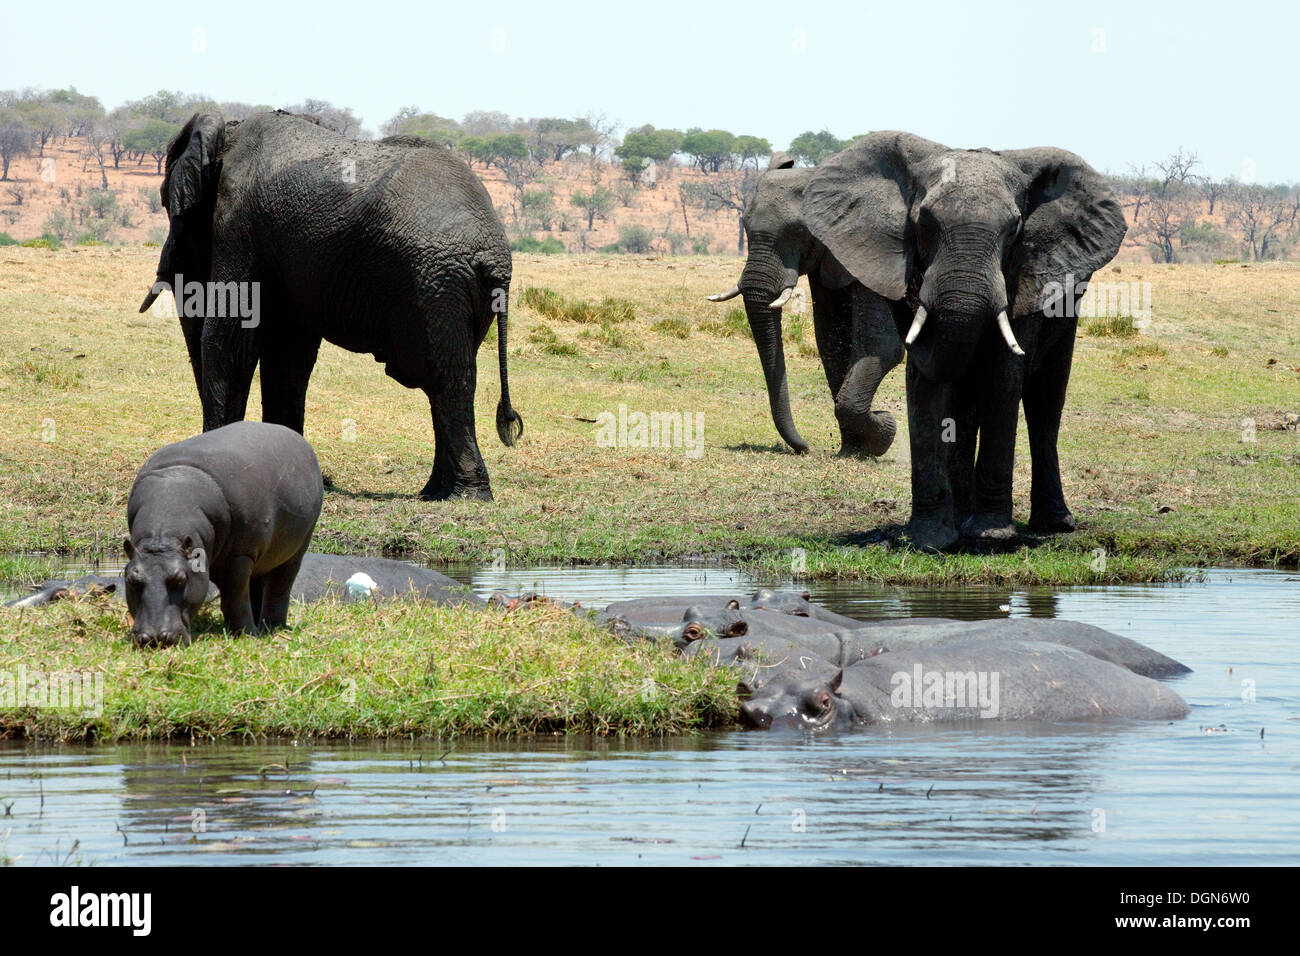 African elephants and hippo on the banks of the River Chobe, Chobe National park, Botswana Africa - Stock Image